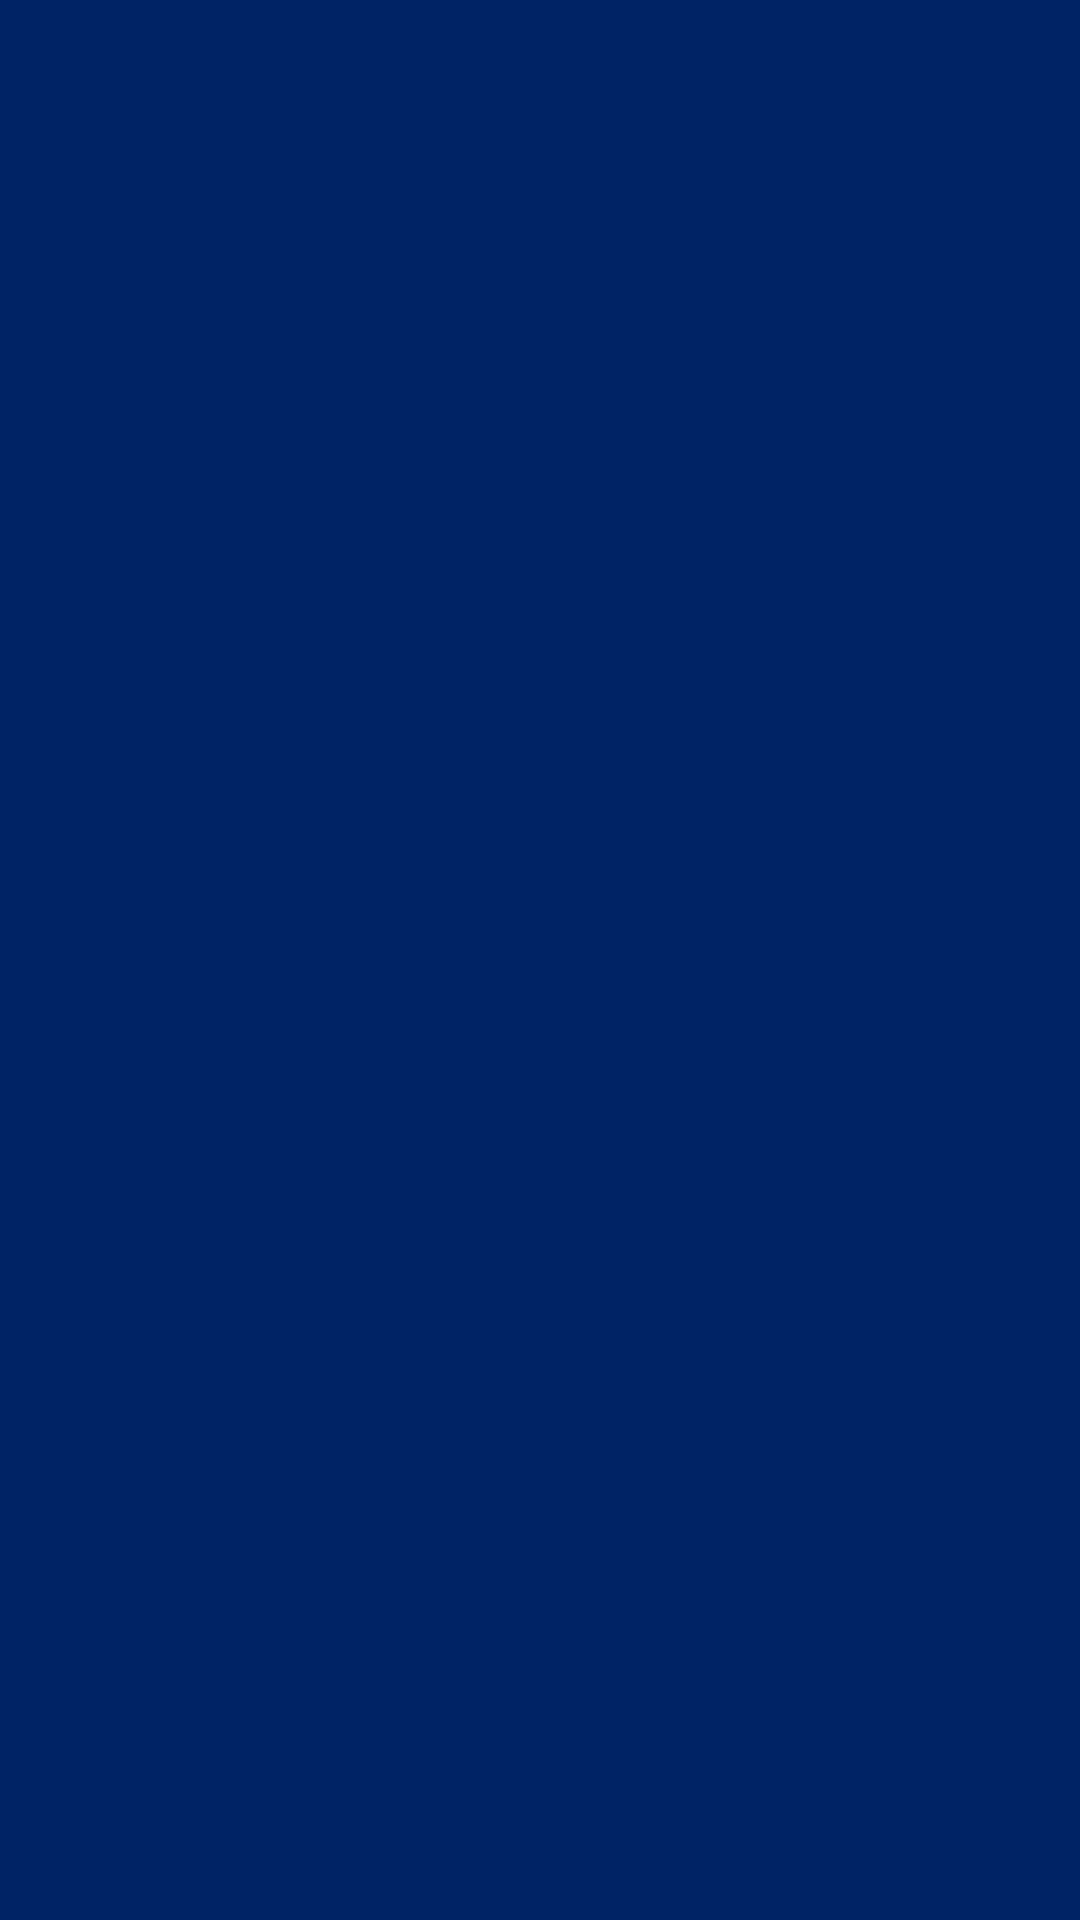 1080x1920 Royal Blue Traditional Solid Color Background